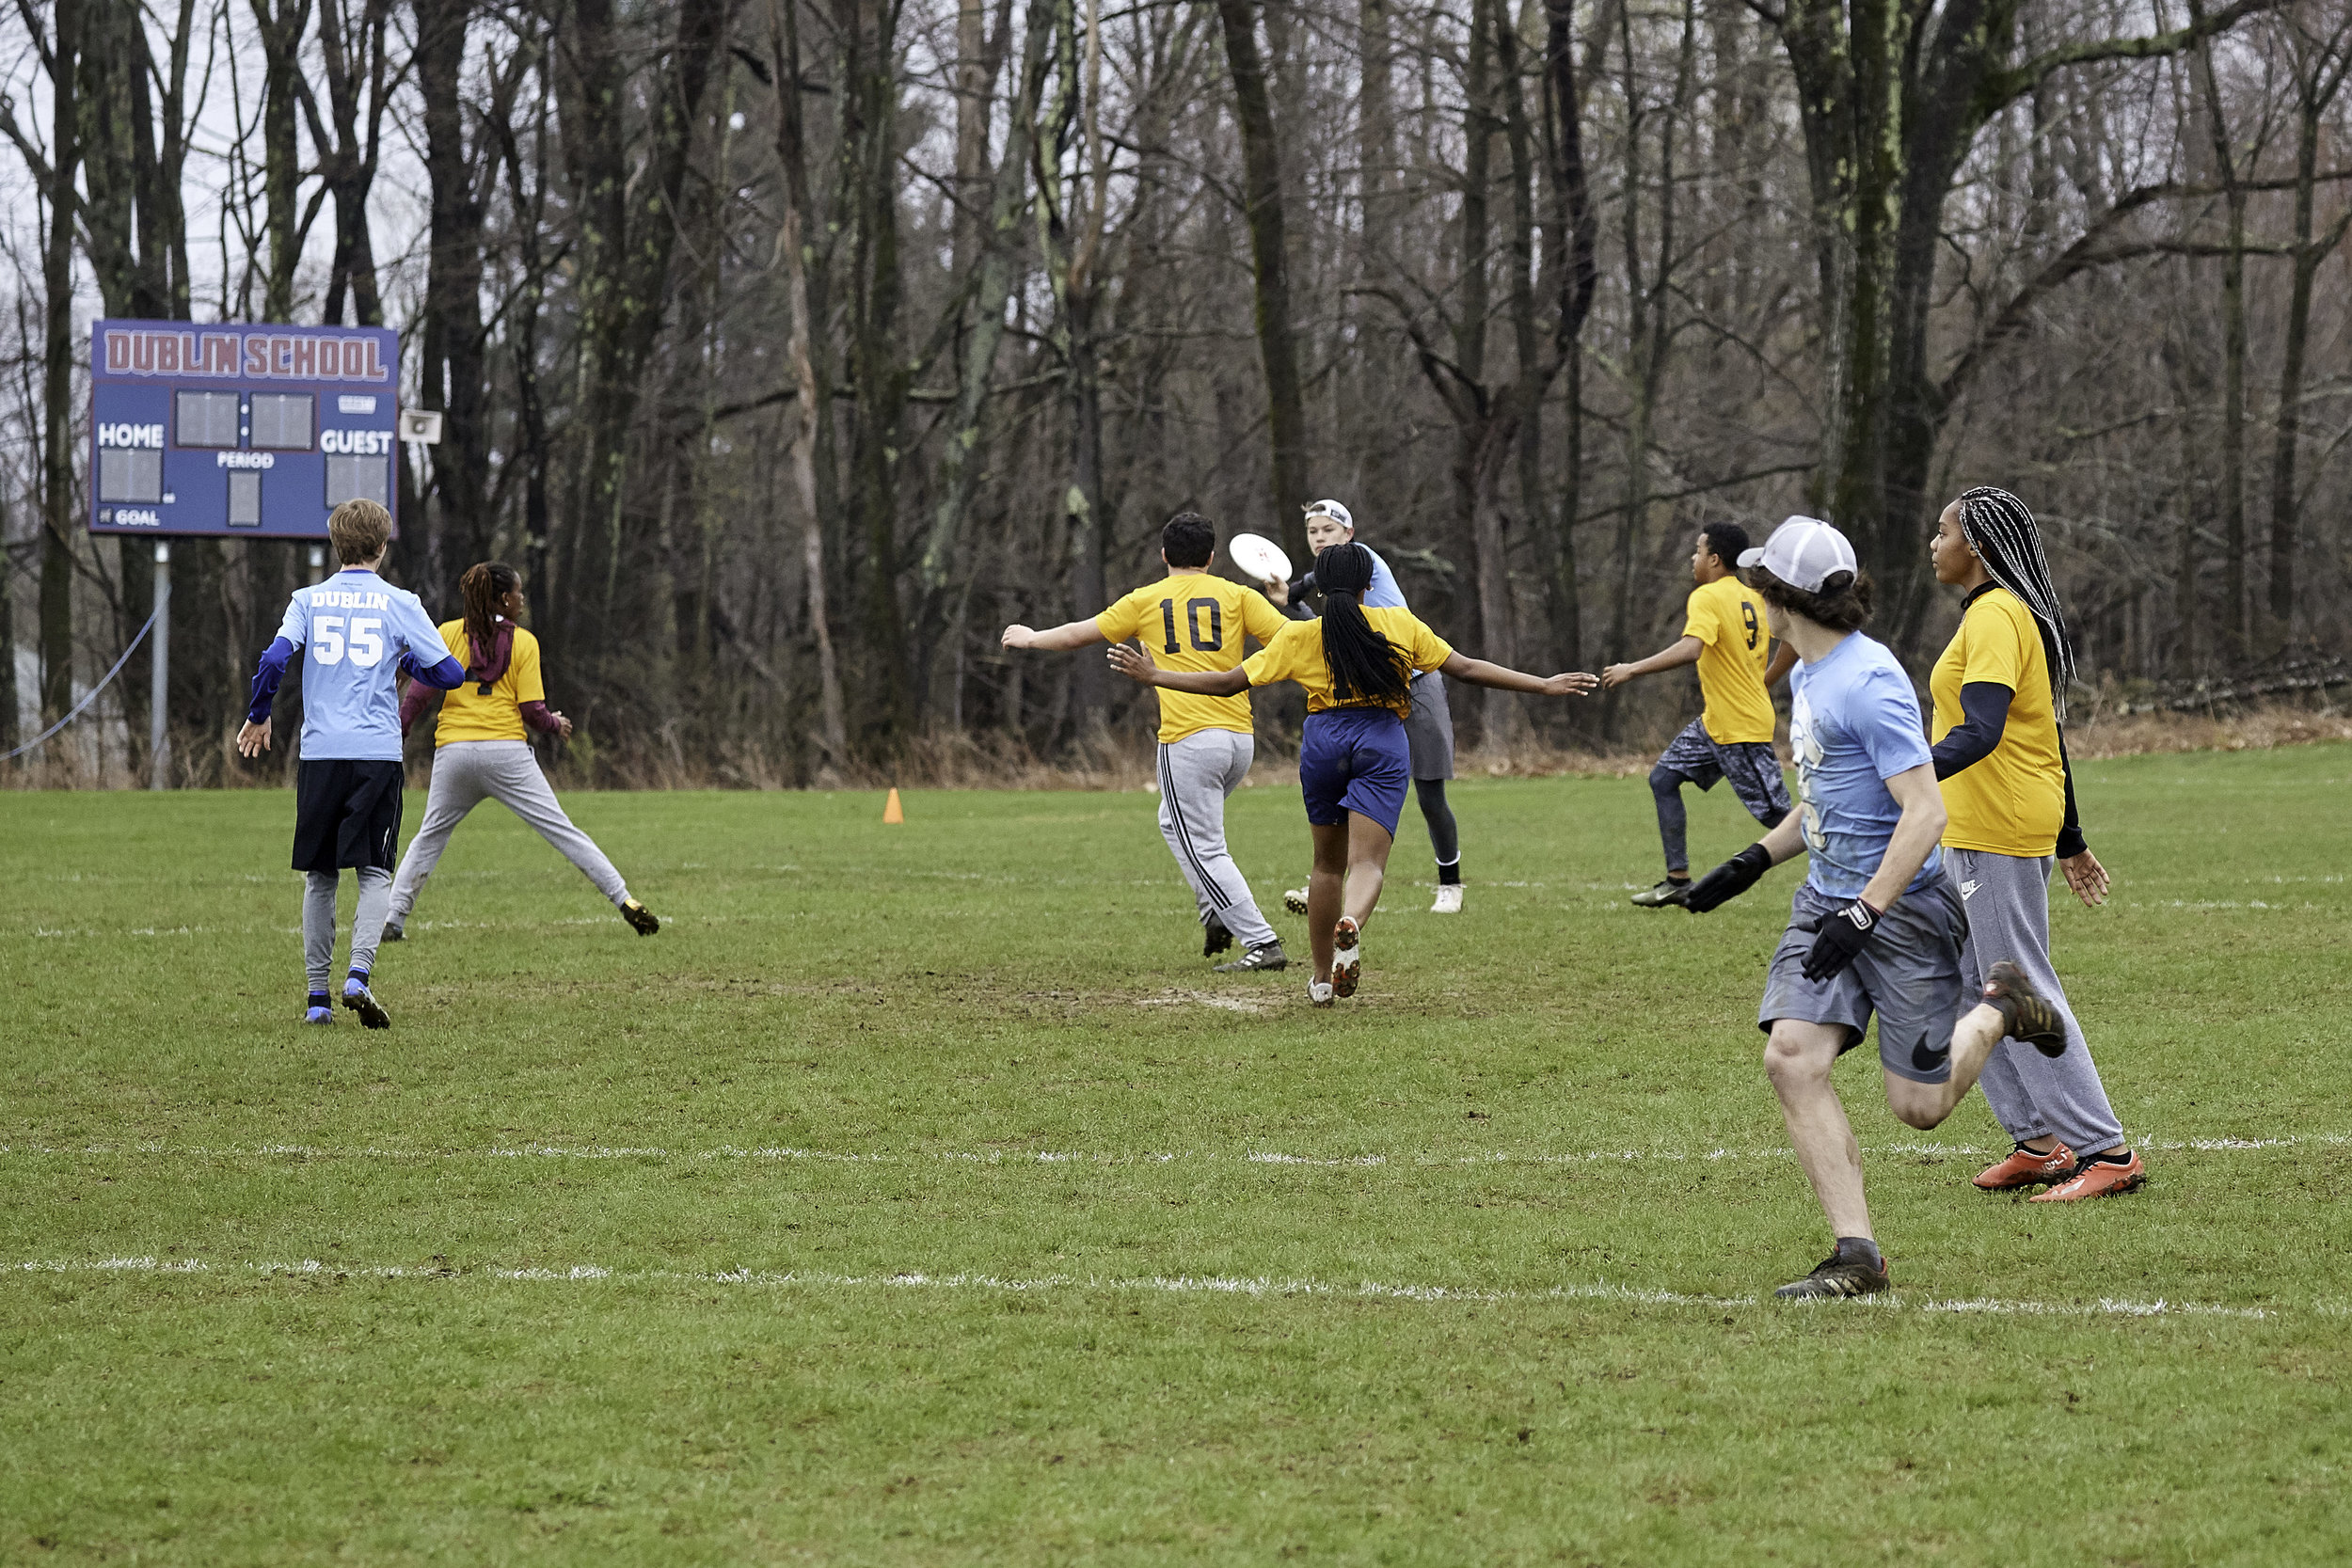 Ultimate Frisbee vs. Eagle Hill School - May 3, 2019 - 188659.jpg